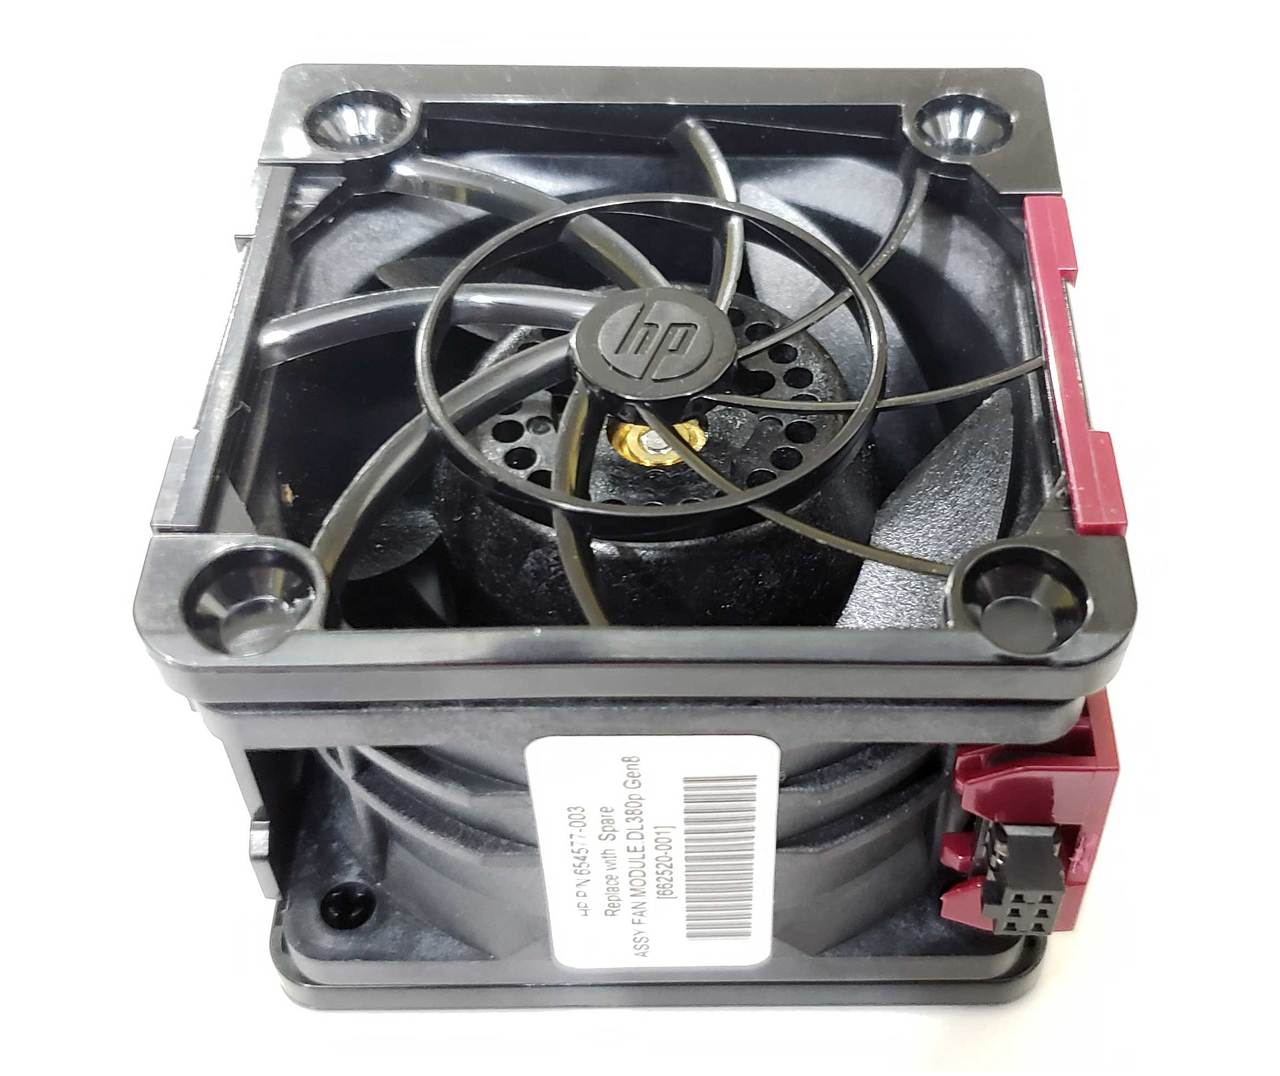 HP Proliant DL380 G8 DL380p G8 DL380e 654577-001 662520-001 Server Cooling Fan